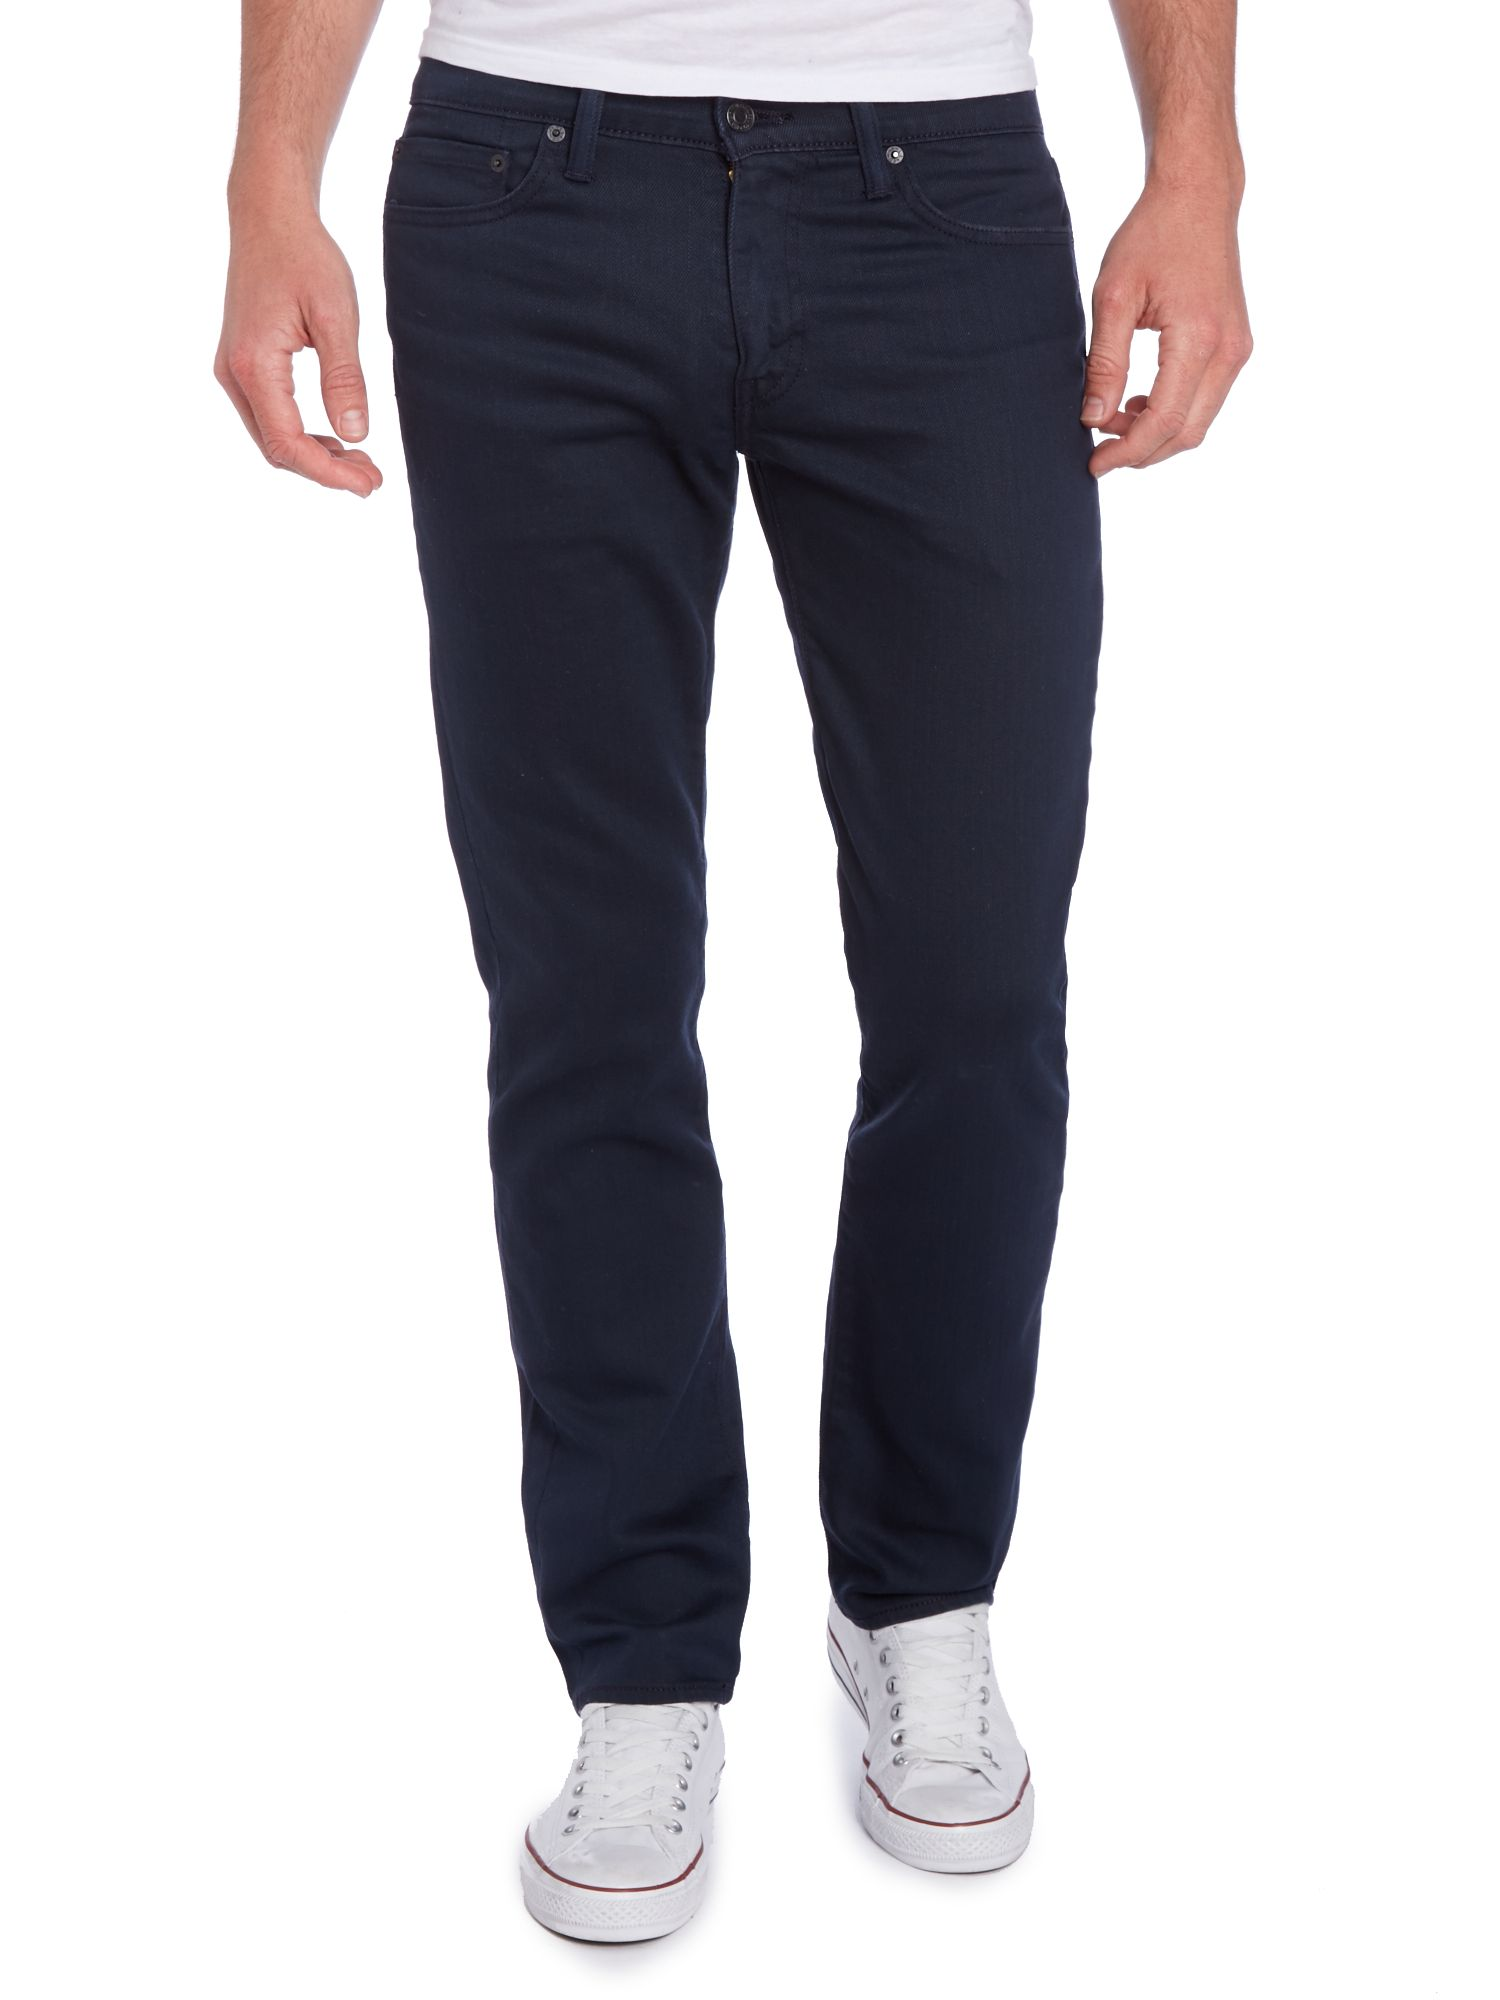 511 slim fit deep sulphur wash jean